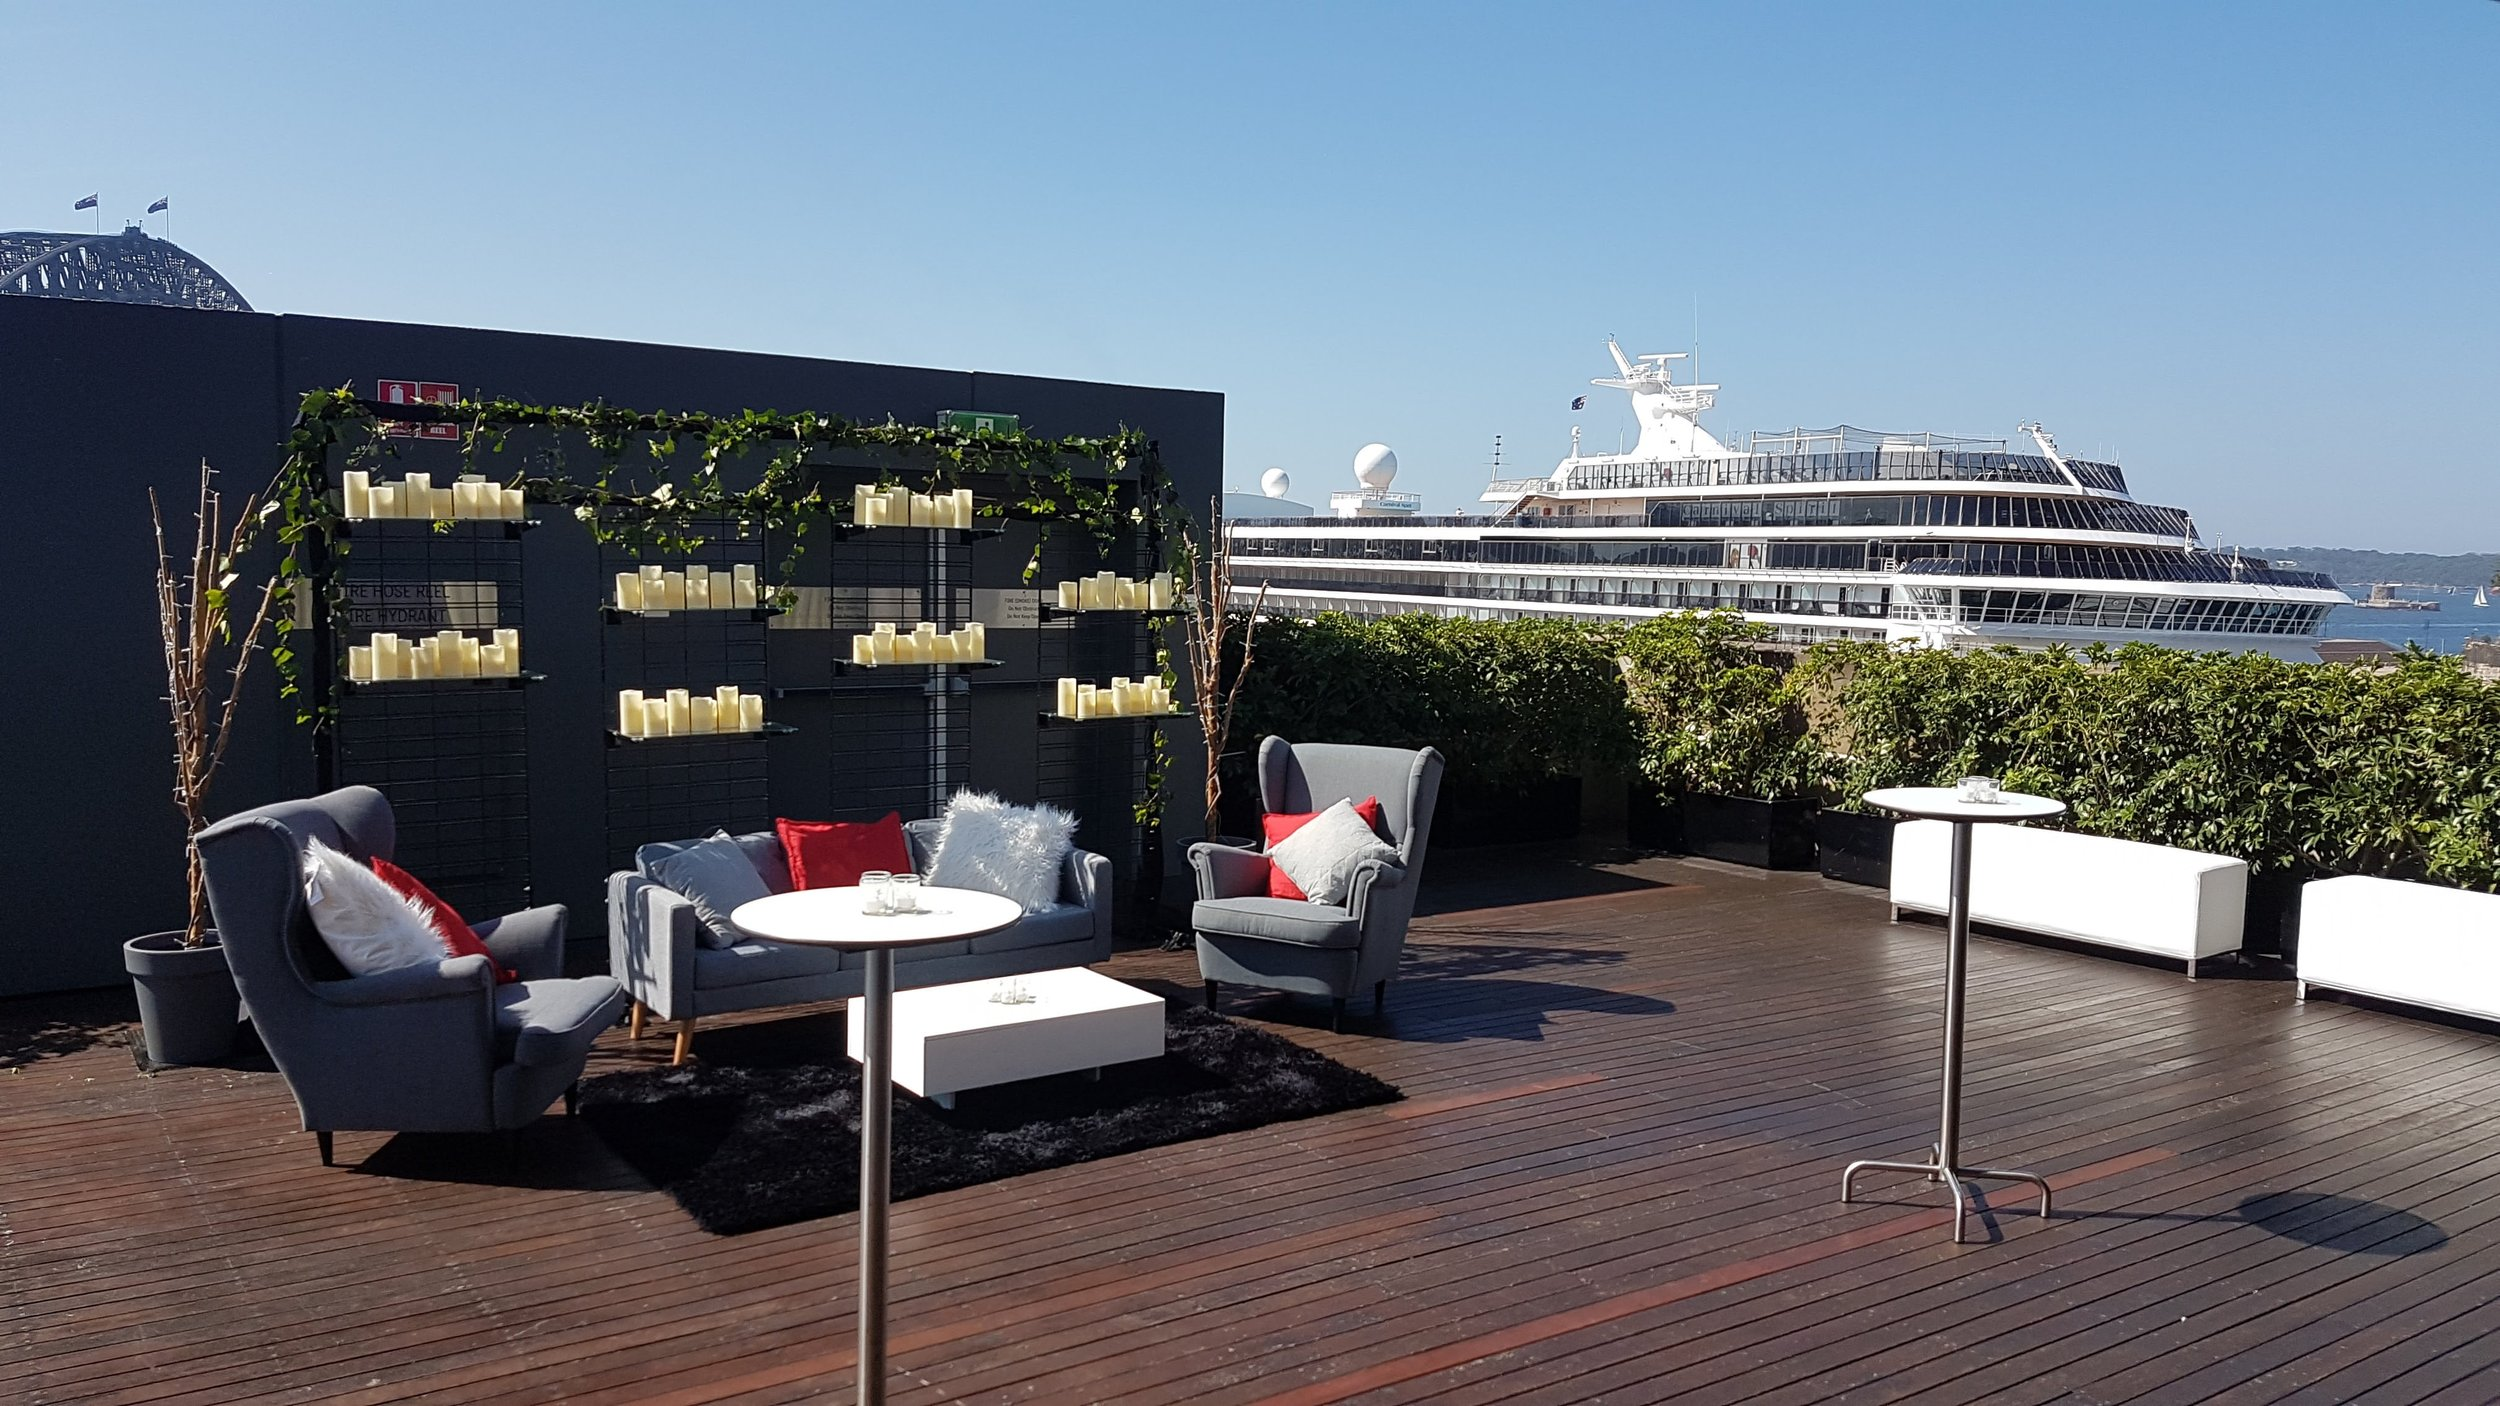 Modern and CONTEMPORARY lounge setting at the amazing mca sydney venue - harbourside room - pop up screen with ivy and candles to hide the fire exit